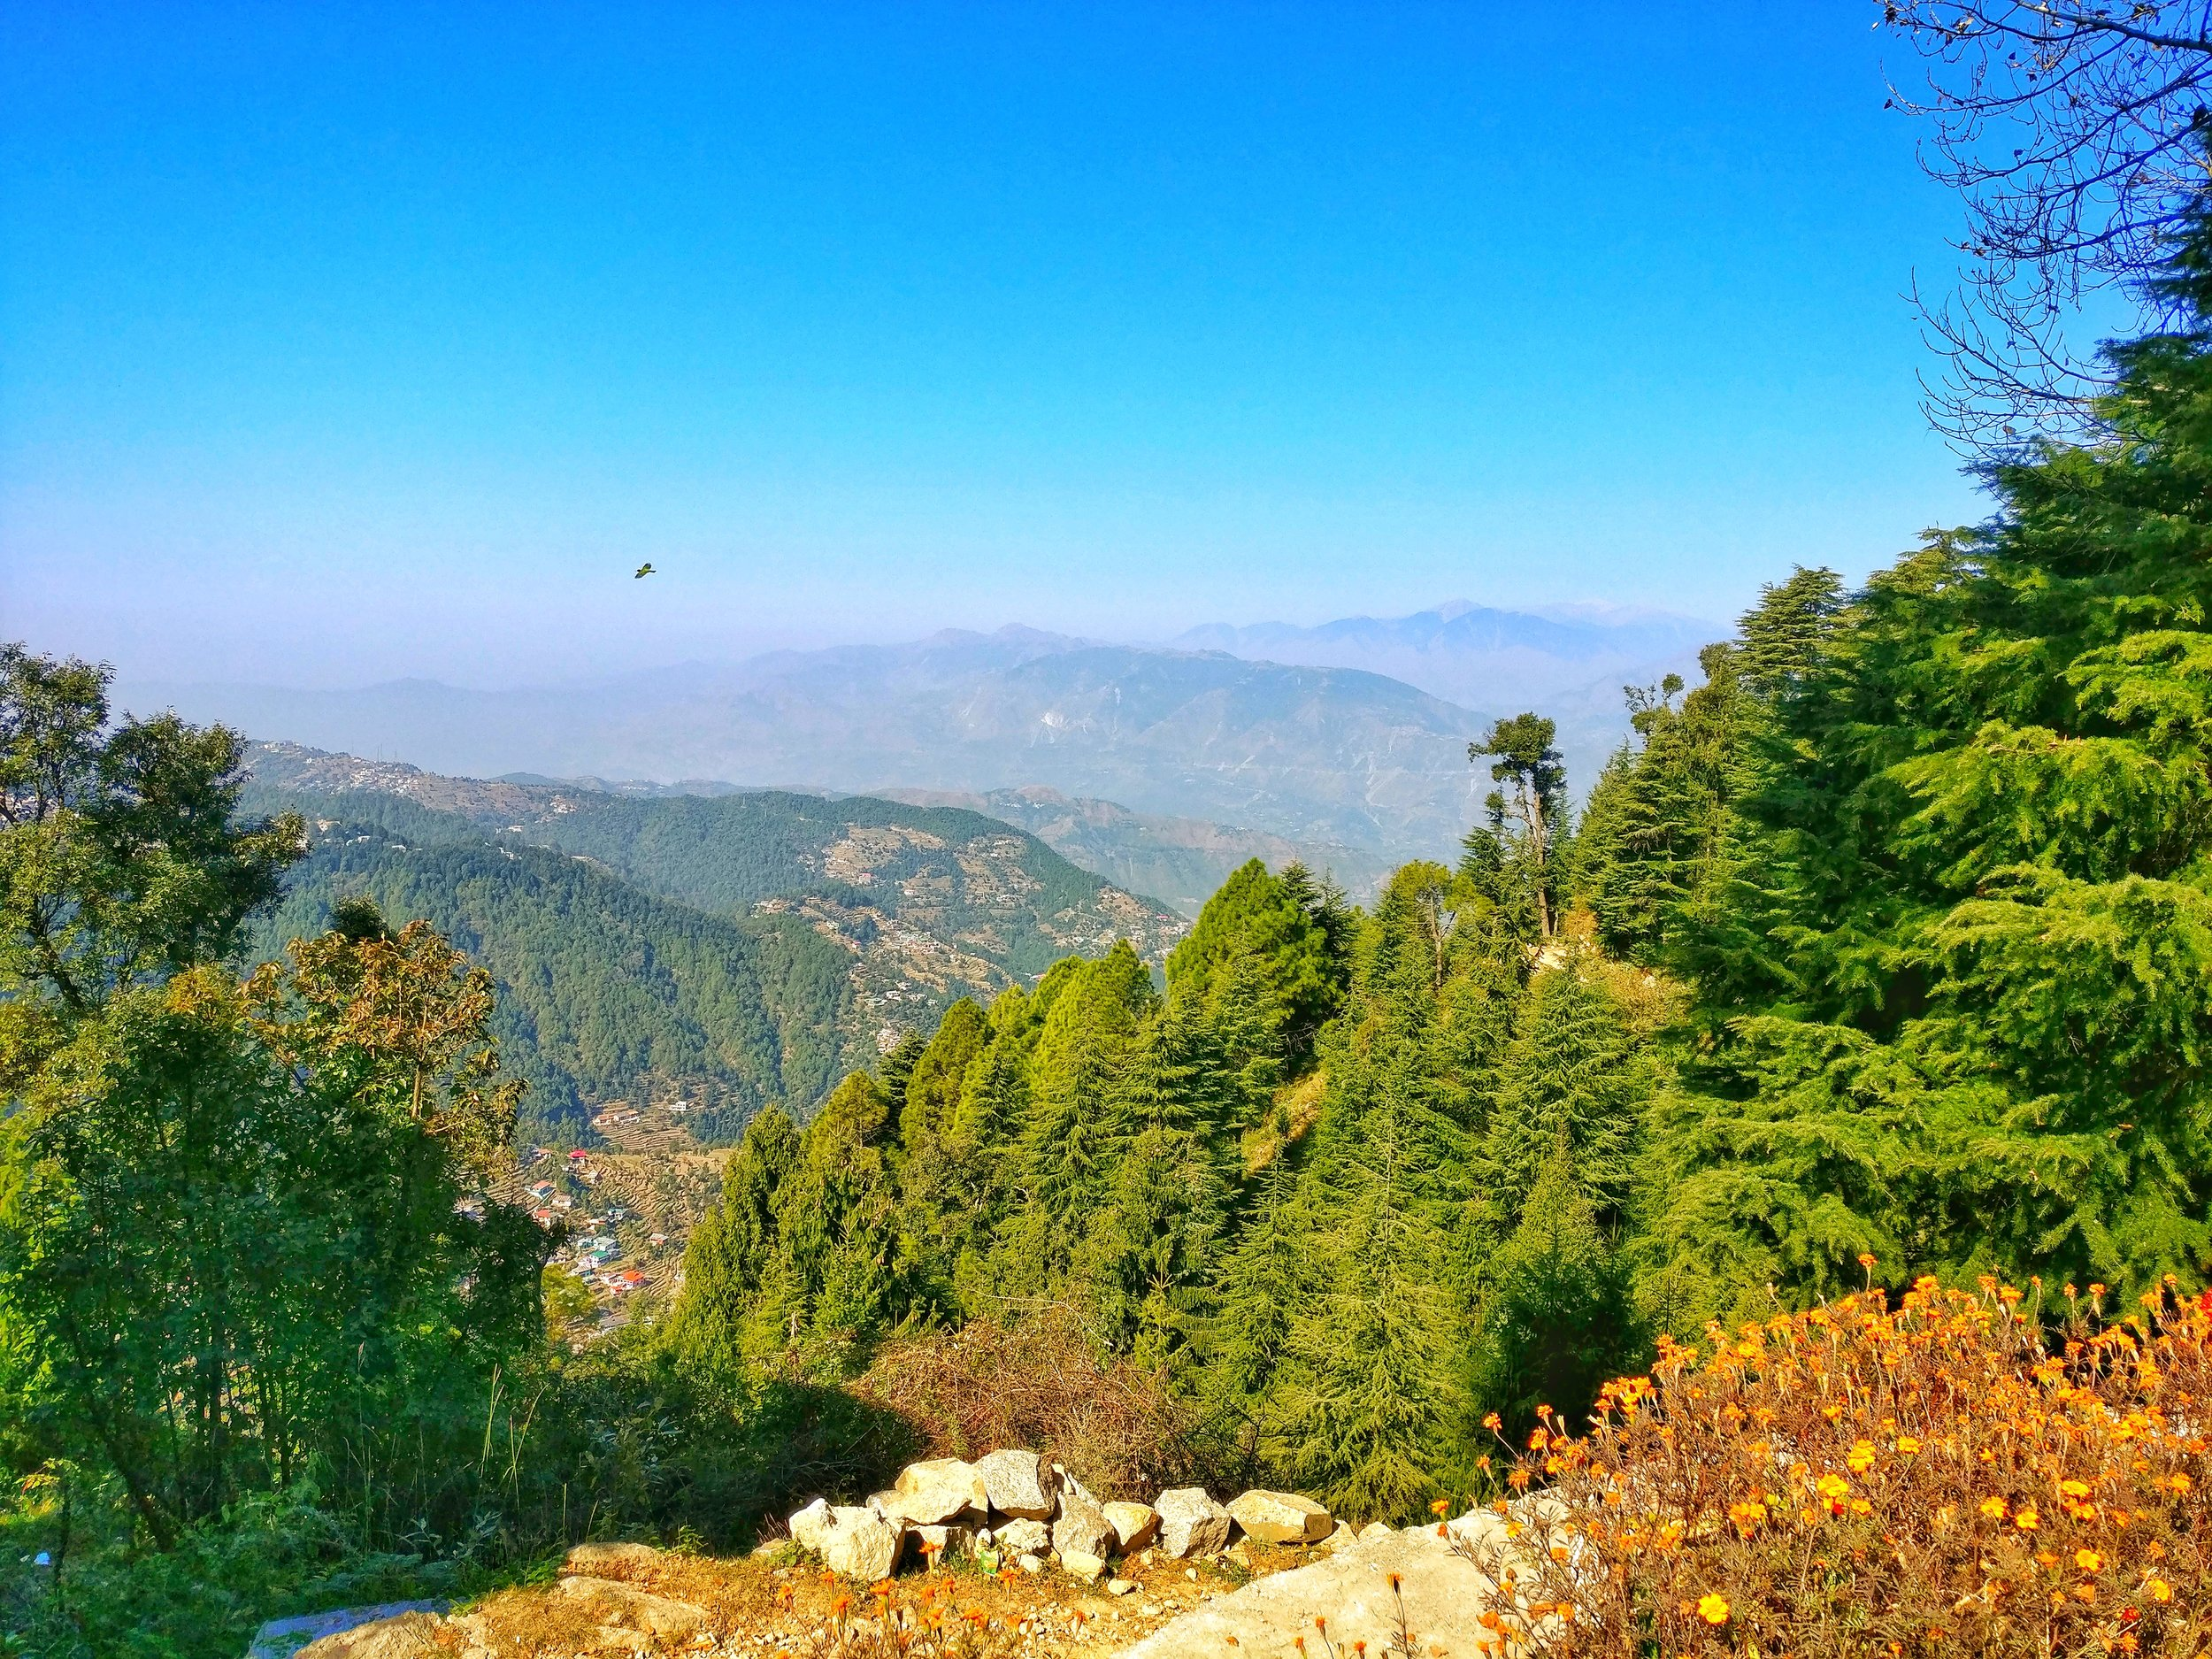 A view of the Chamba region from Dalhousie